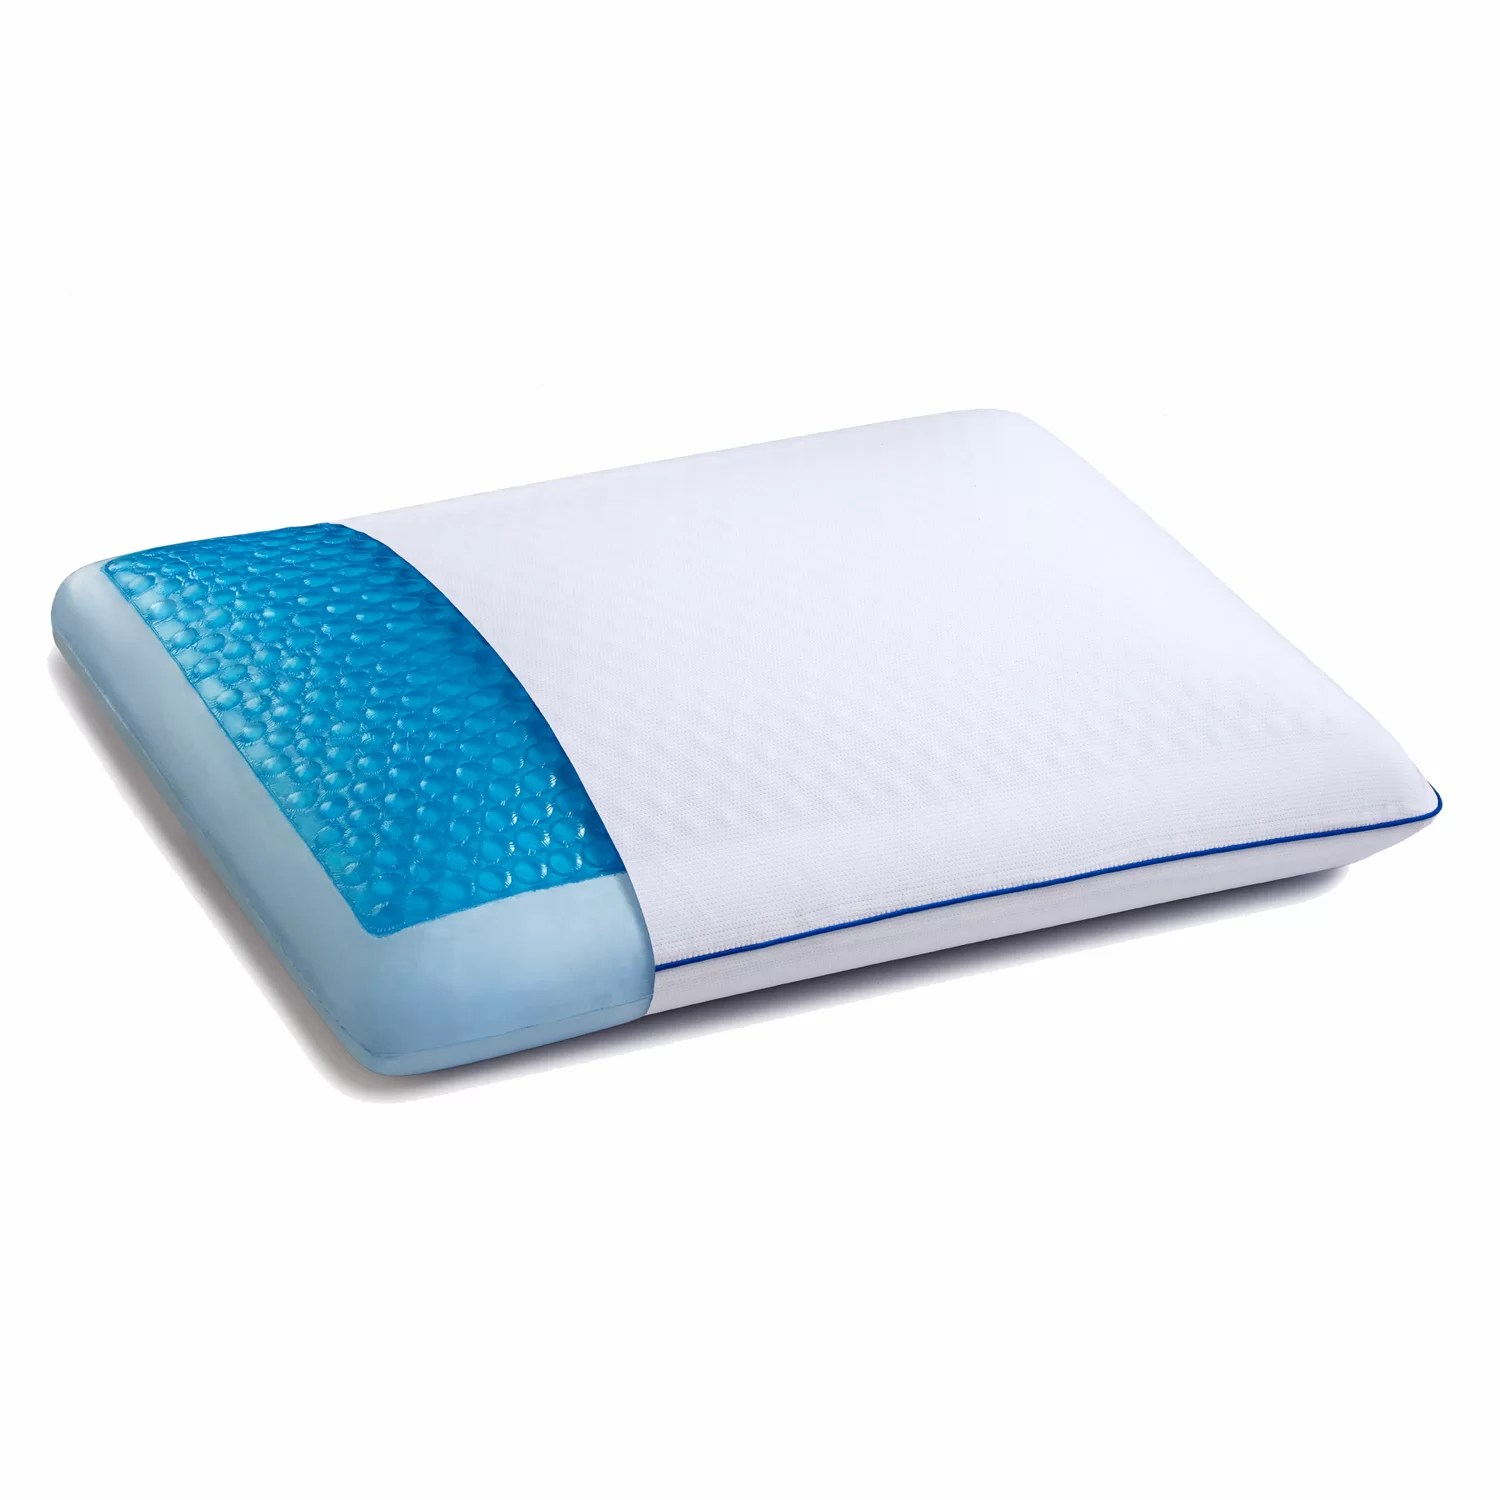 Gel Infused Memory Foam Pillow Coolgel Hd Gel Memory Foam Pillow